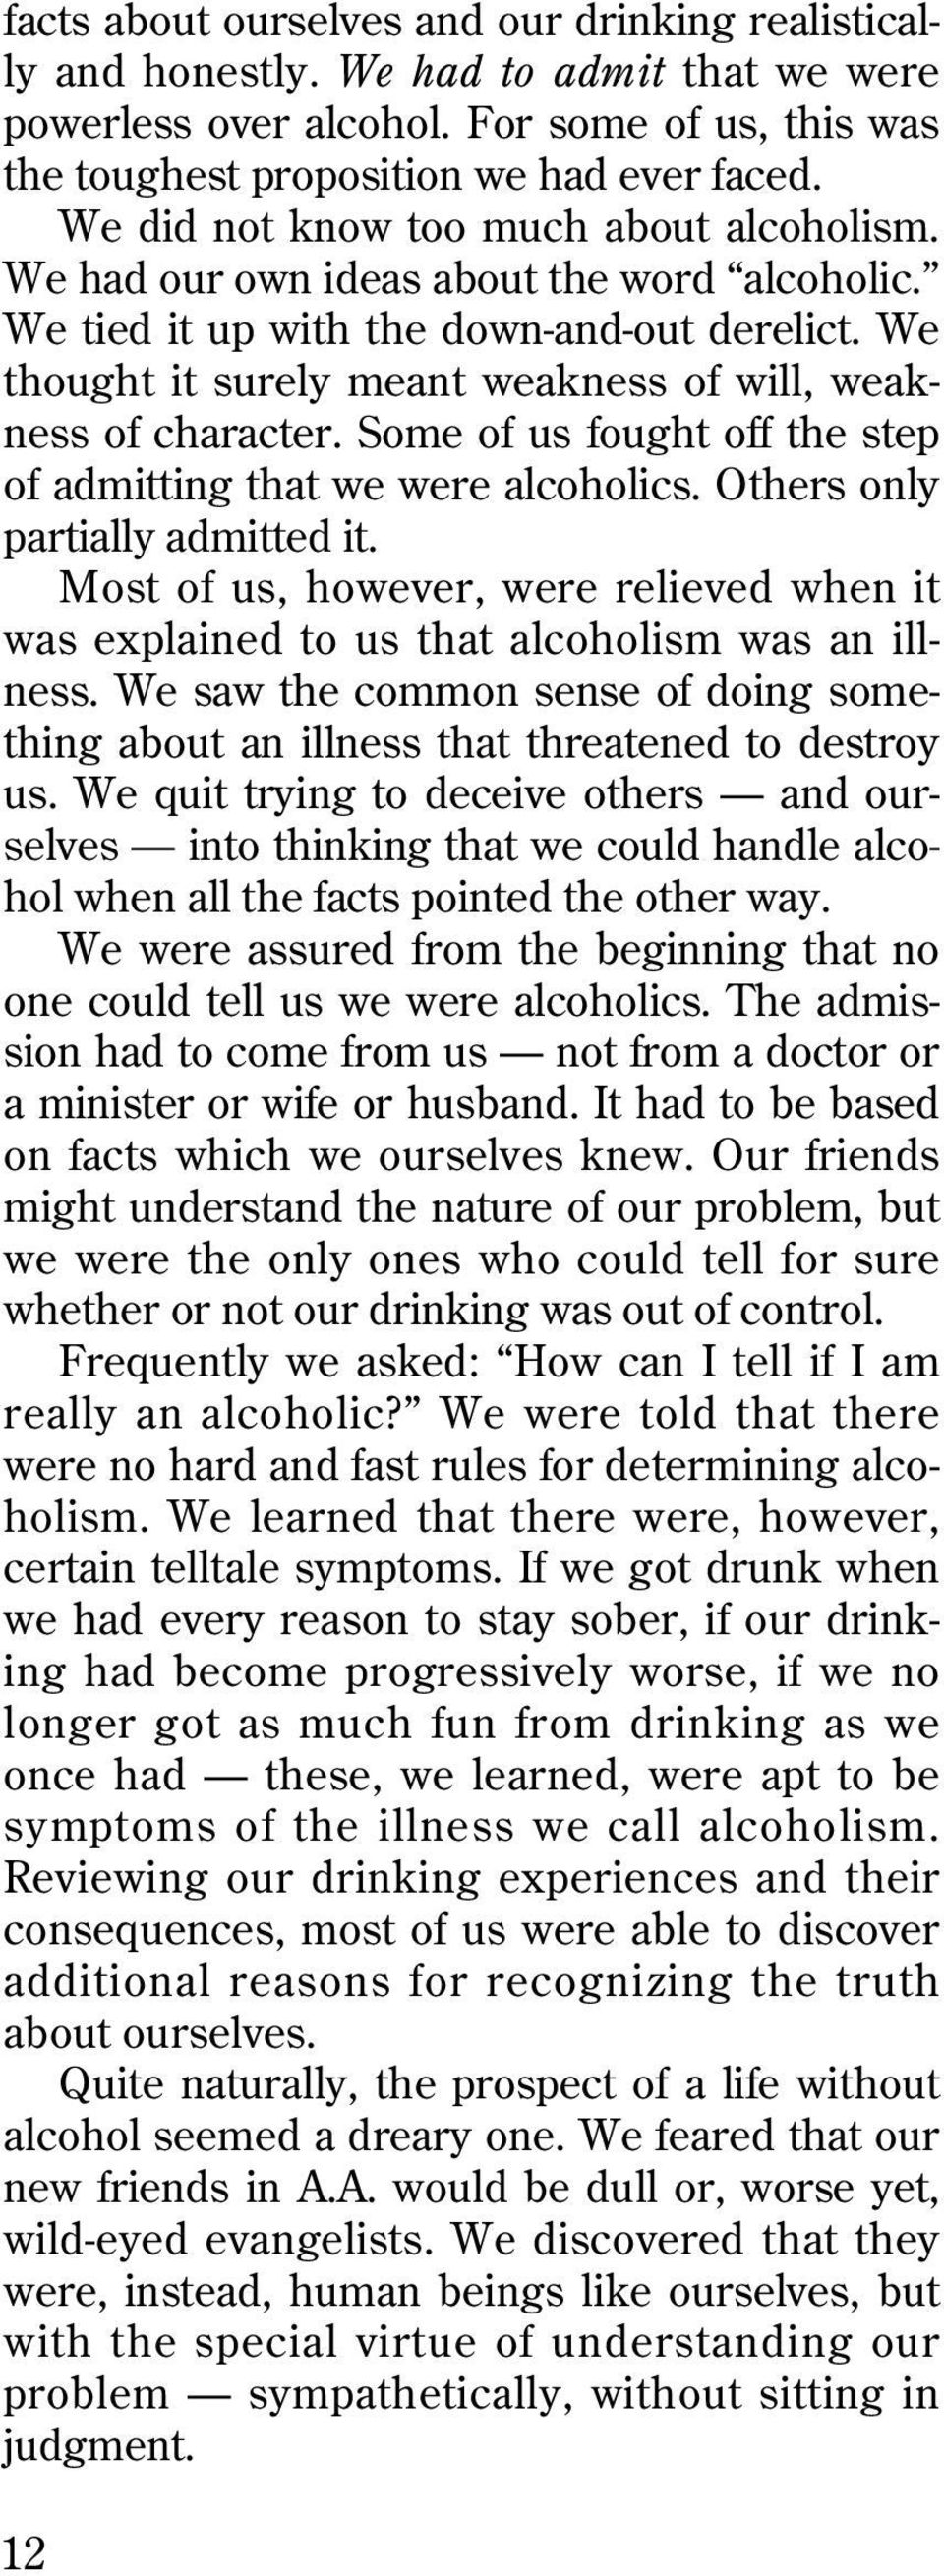 We thought it surely meant weakness of will, weakness of character. Some of us fought off the step of admitting that we were alcoholics. Others only partially admitted it.